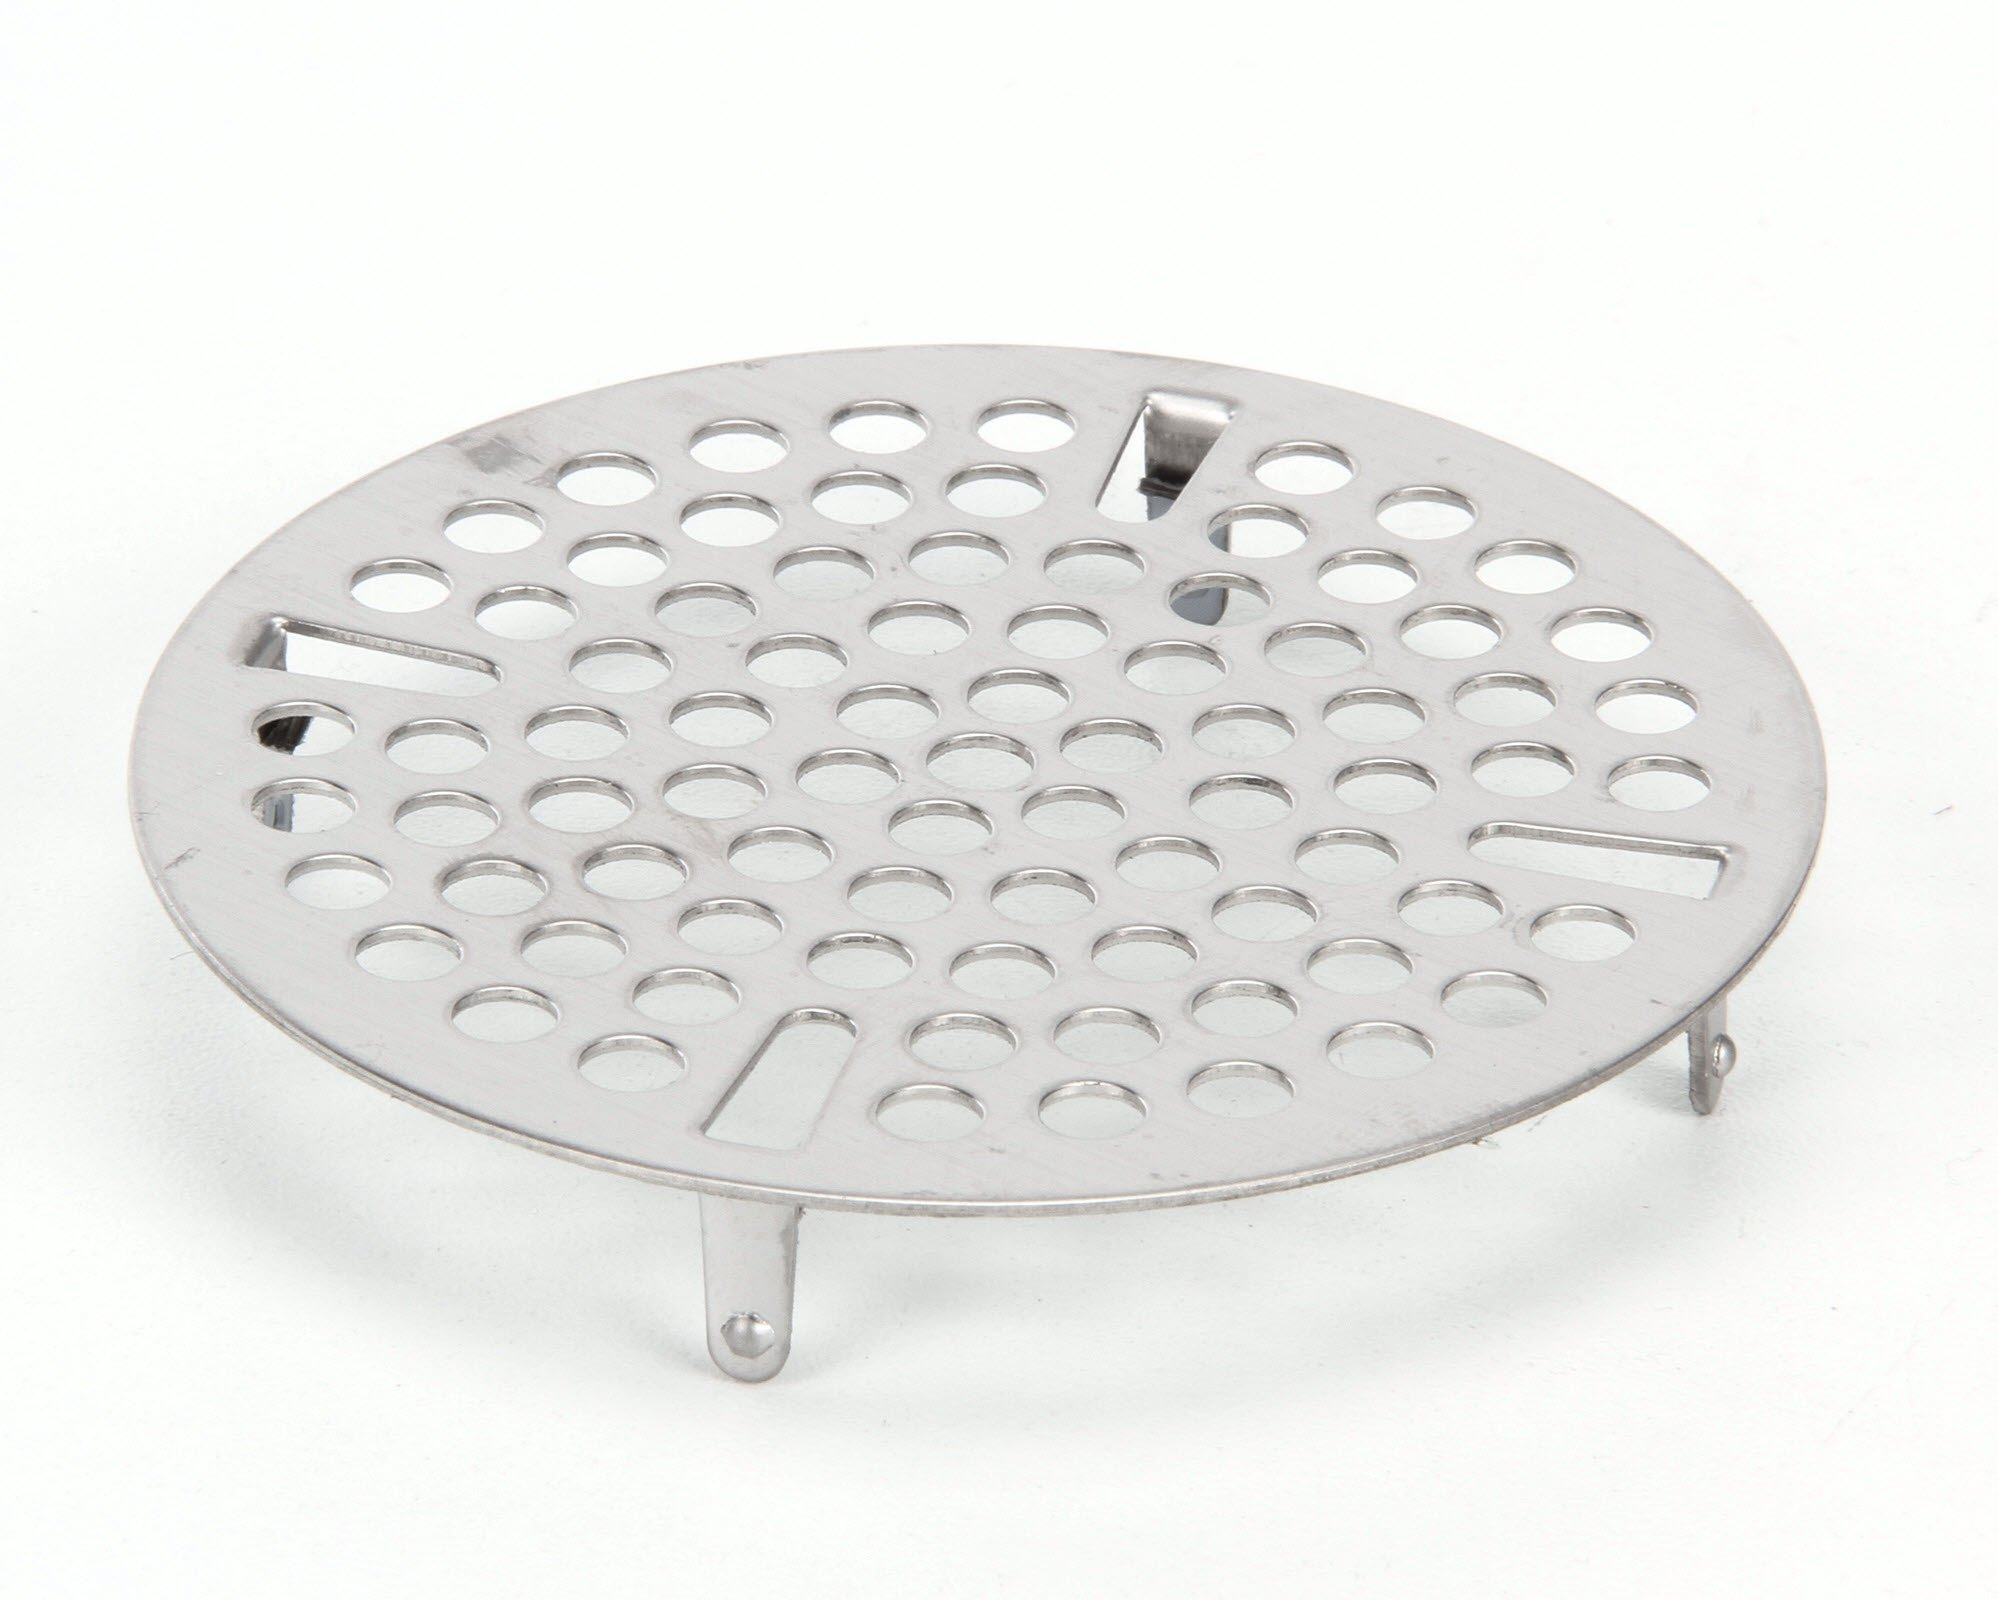 T&S Brass 010385-45 3-Inch Flat Strainer, Stainless Steel